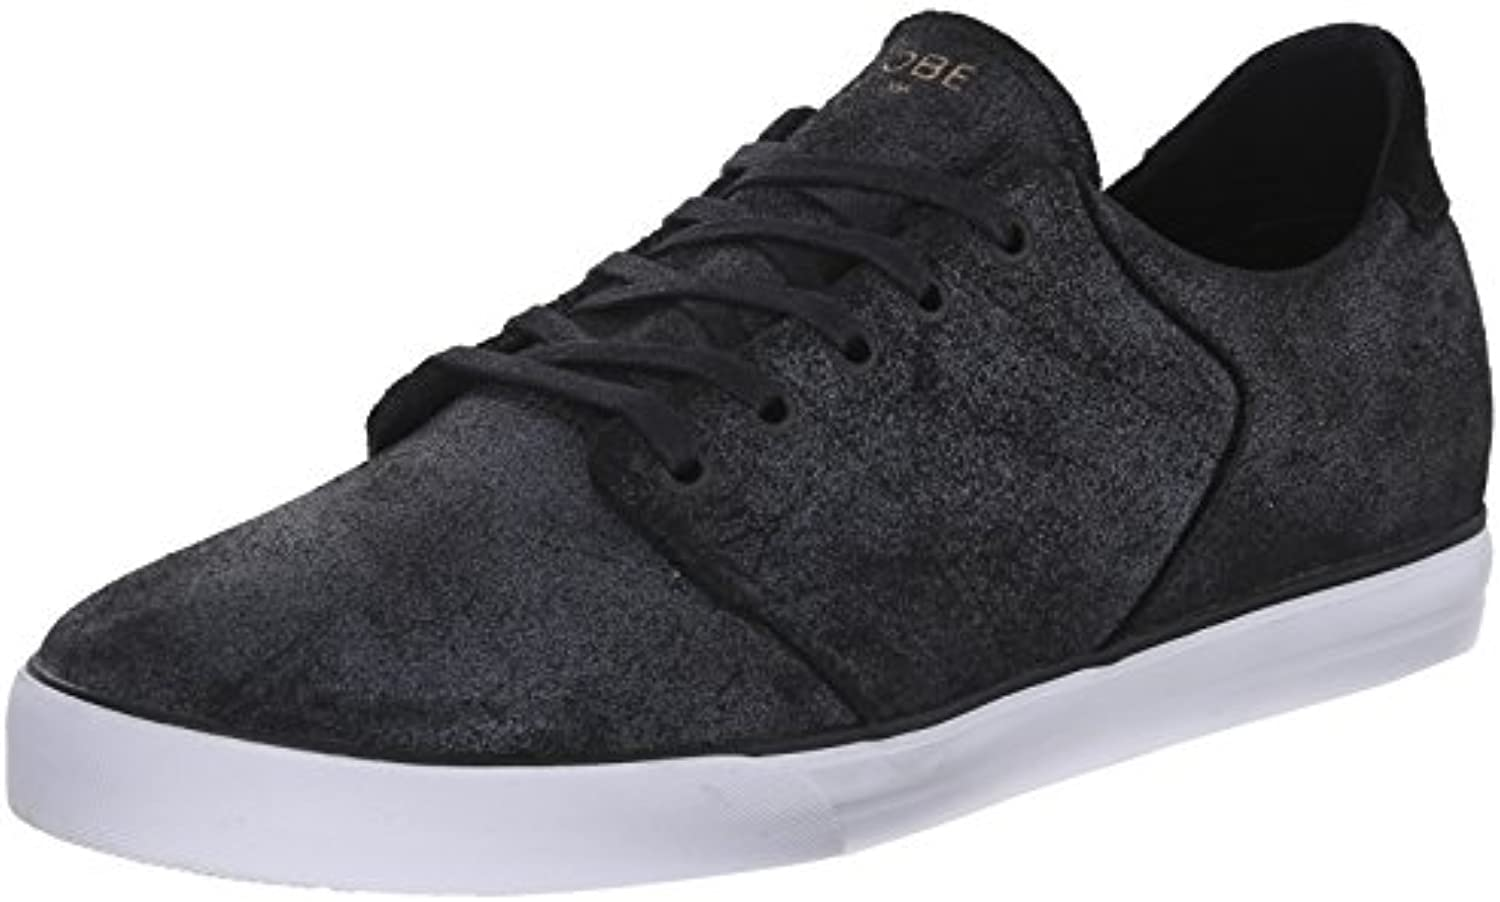 Globe Skateboard Shoes LOS Angered Low Distressed Black Size 8  -